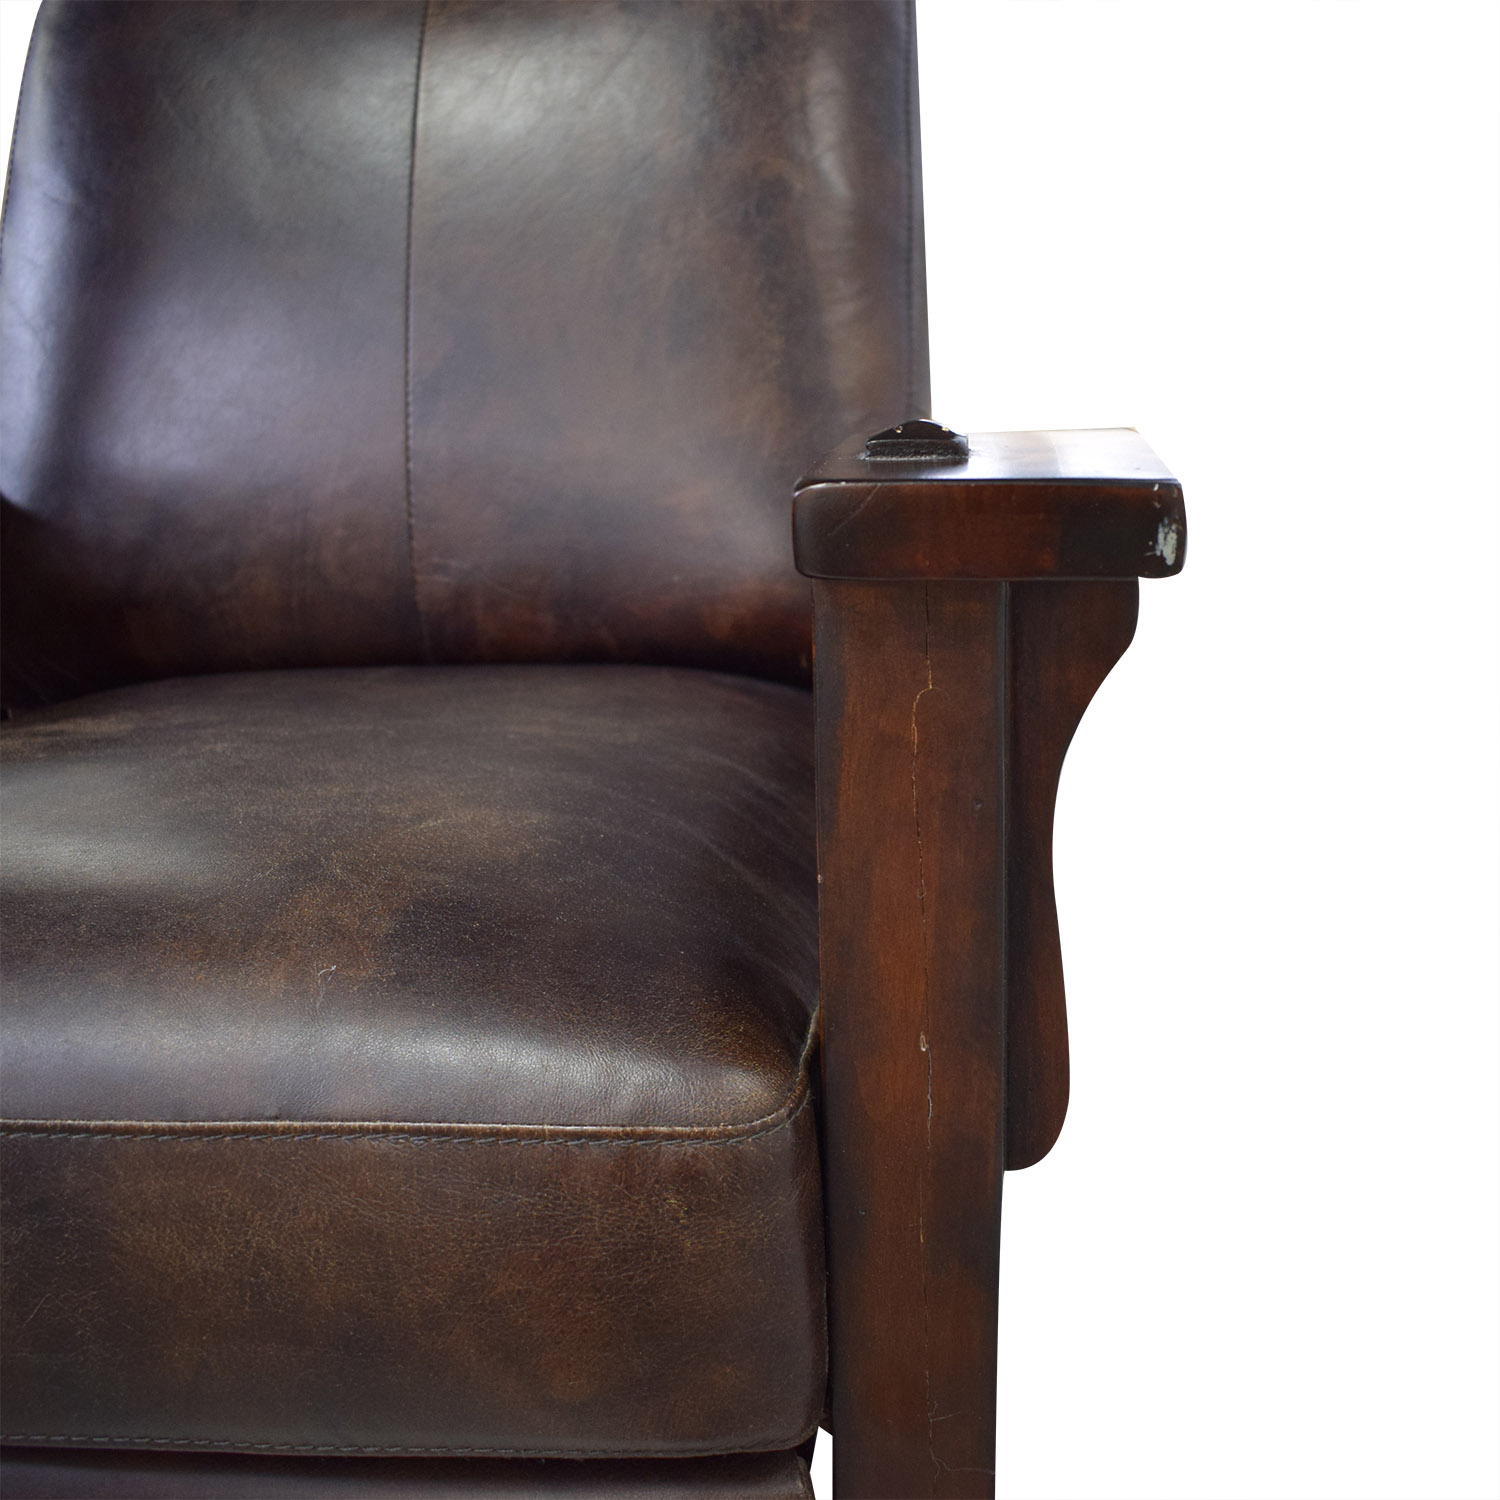 buy Recliner Chair with Wood Frame